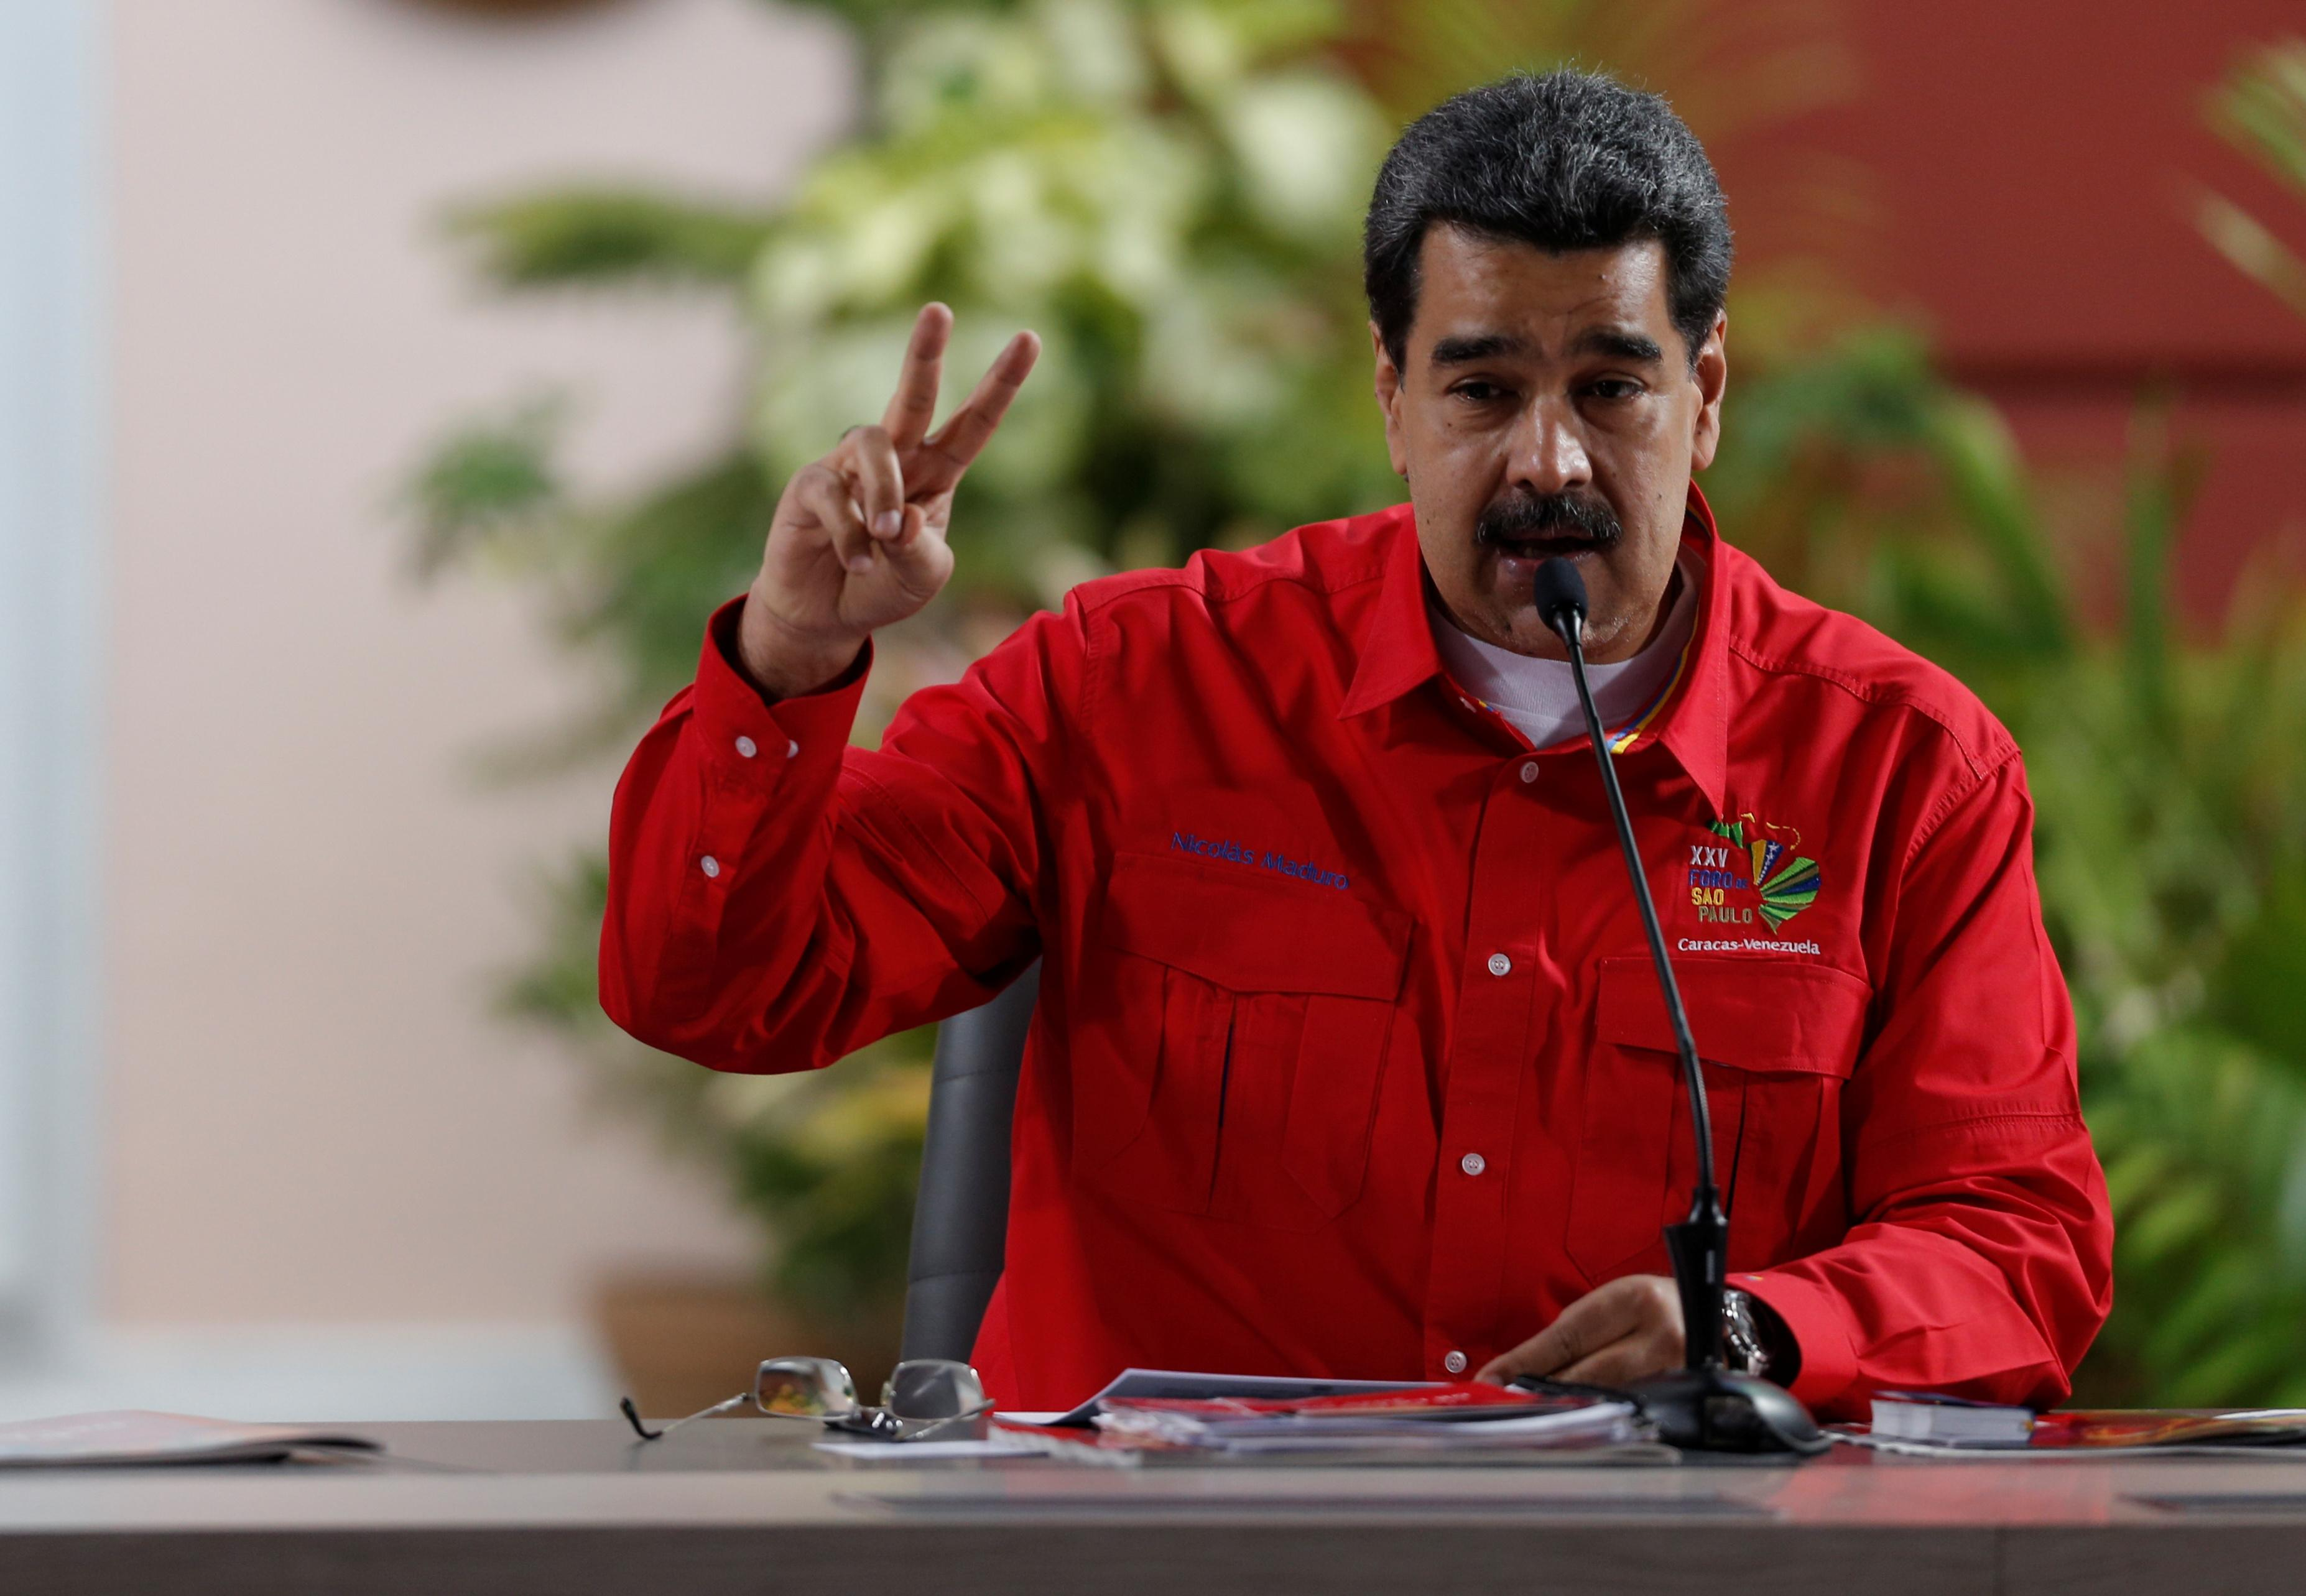 In Venezuela talks, Maduro allies said they would consider fresh elections - sources